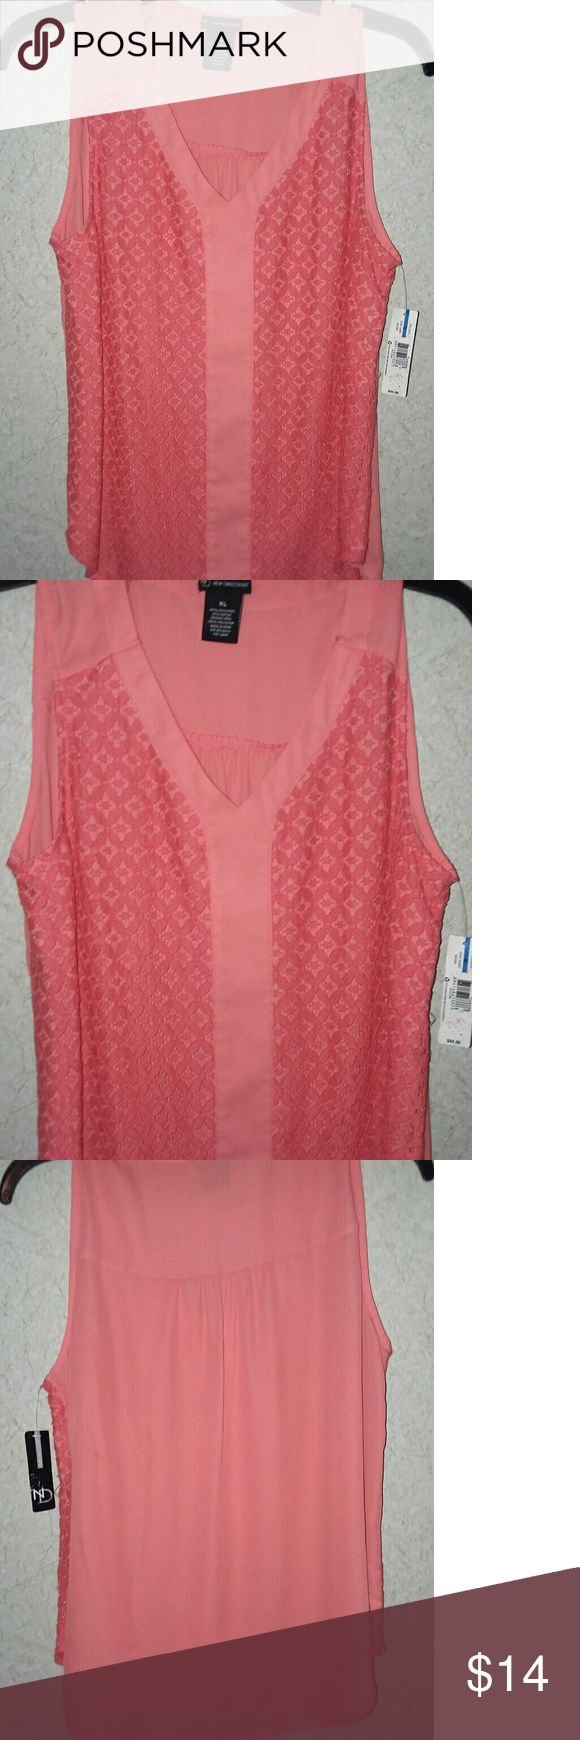 NWT NEW DIRECTIONS CORAL BLOUSE XL SLEEVELESS BLOUSE ..SUPER CUTE AND LIGHTWEIGHT ..BRAND NEW WITH TAGS New Directions Tops Blouses